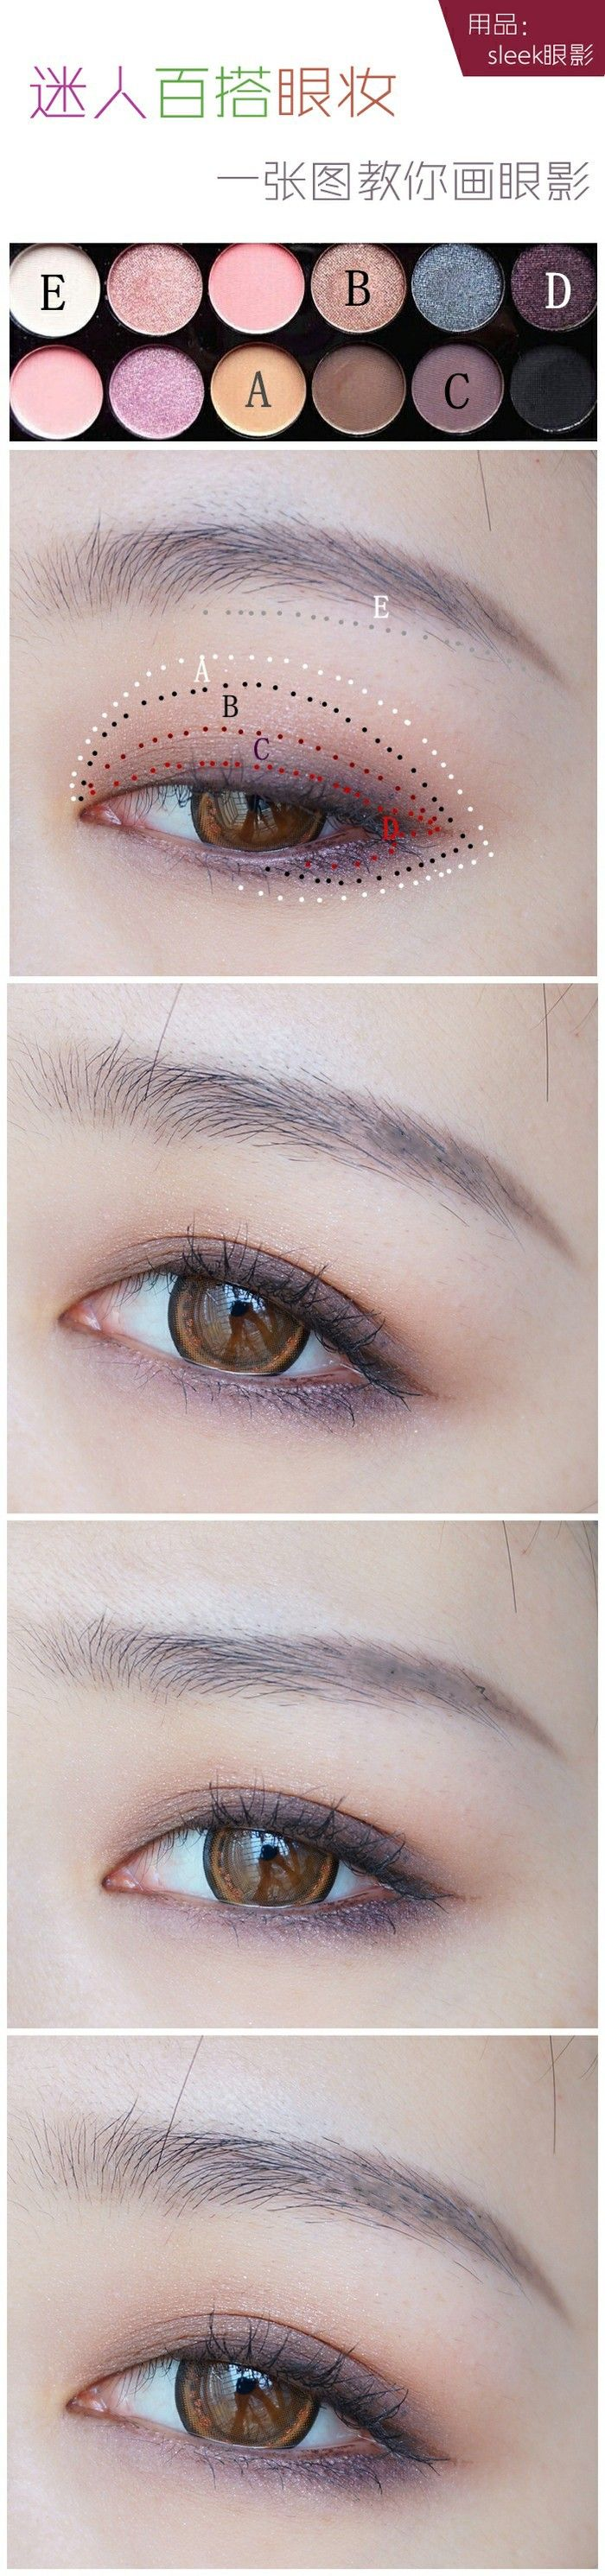 Korean make up!     #JoinNerium #DebbieKrug #NeriumKorea www.AsianSkincare.Rocks